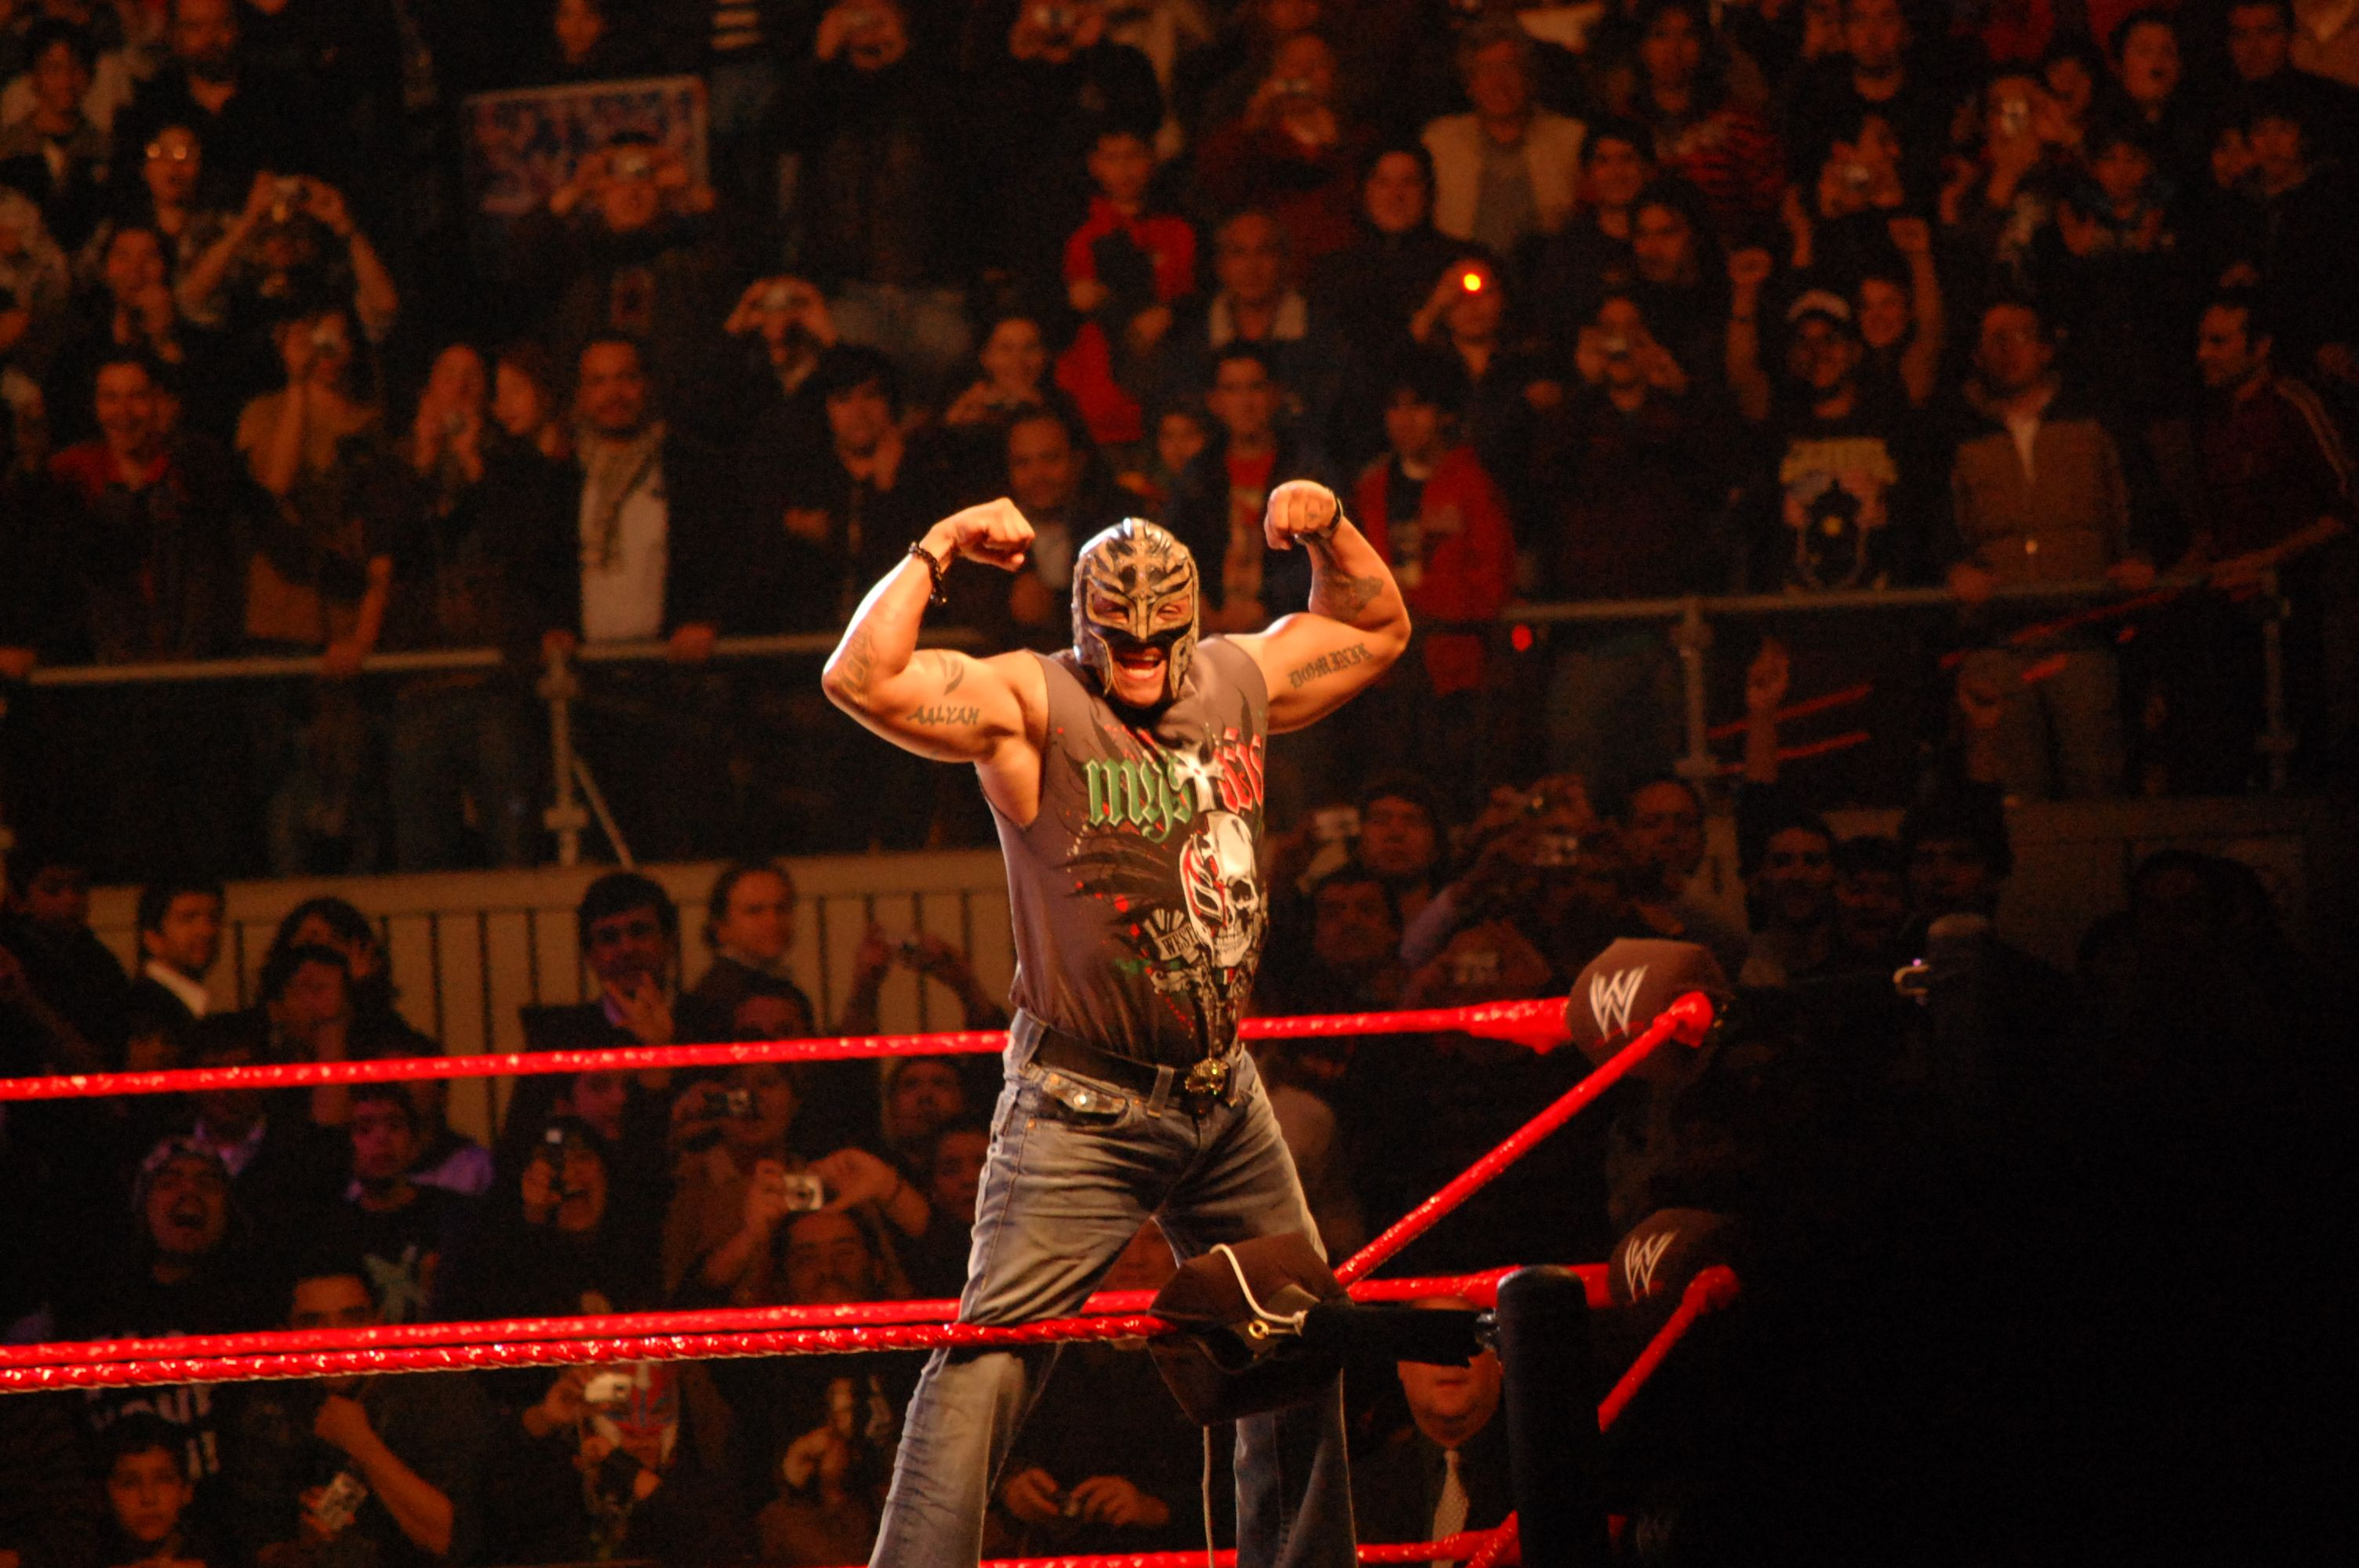 3008x2000 File:Rey mysterio is back.jpg - Wikimedia Commons